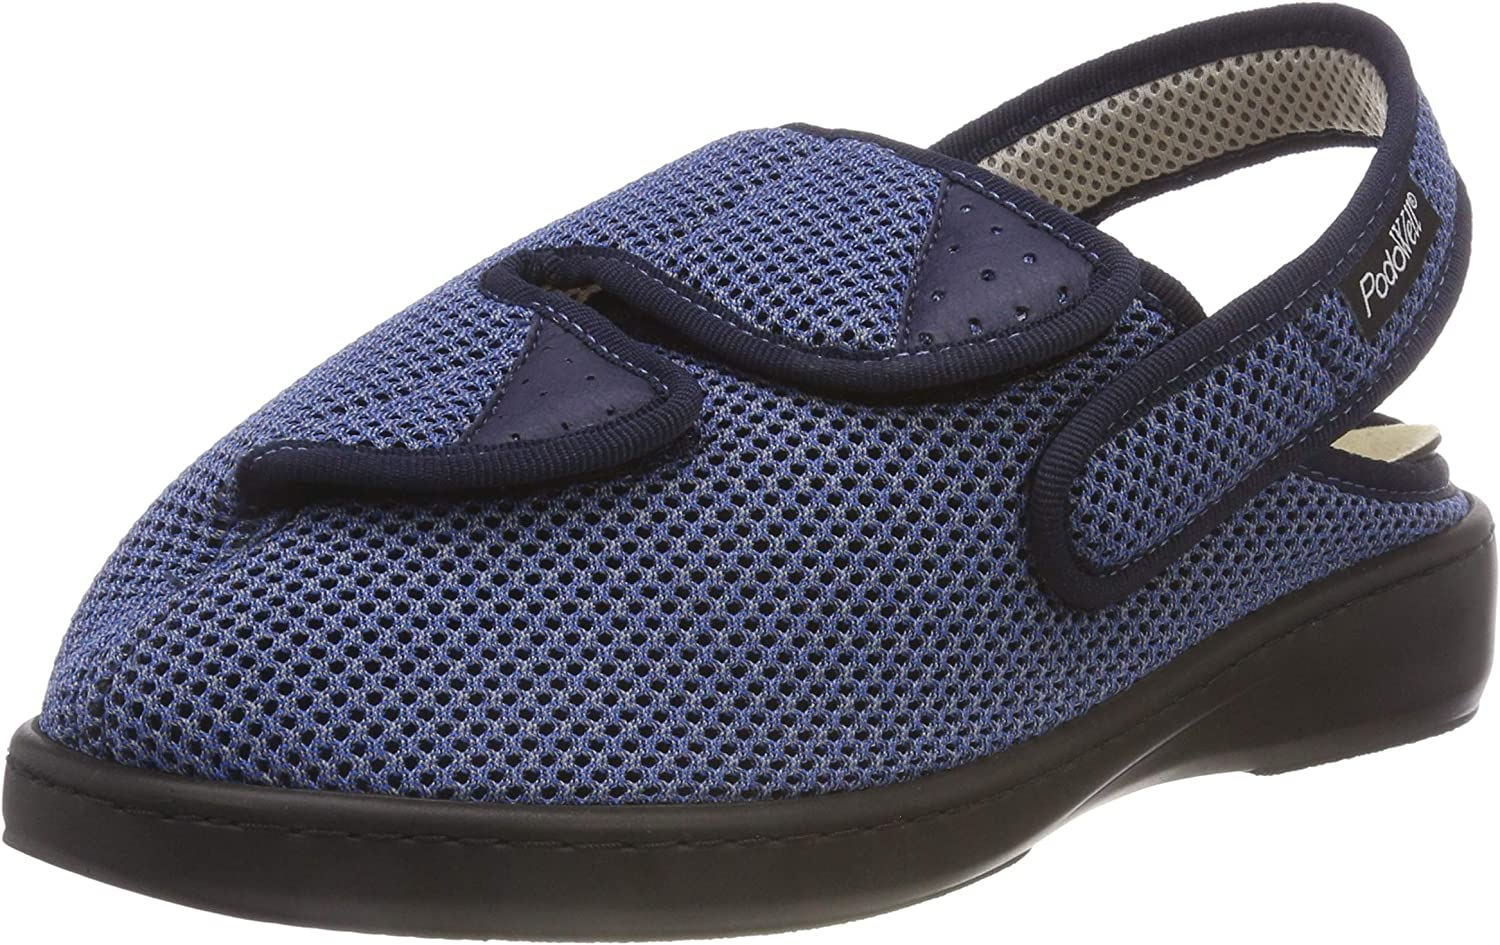 Podowell Womens Low-Top Sneakers